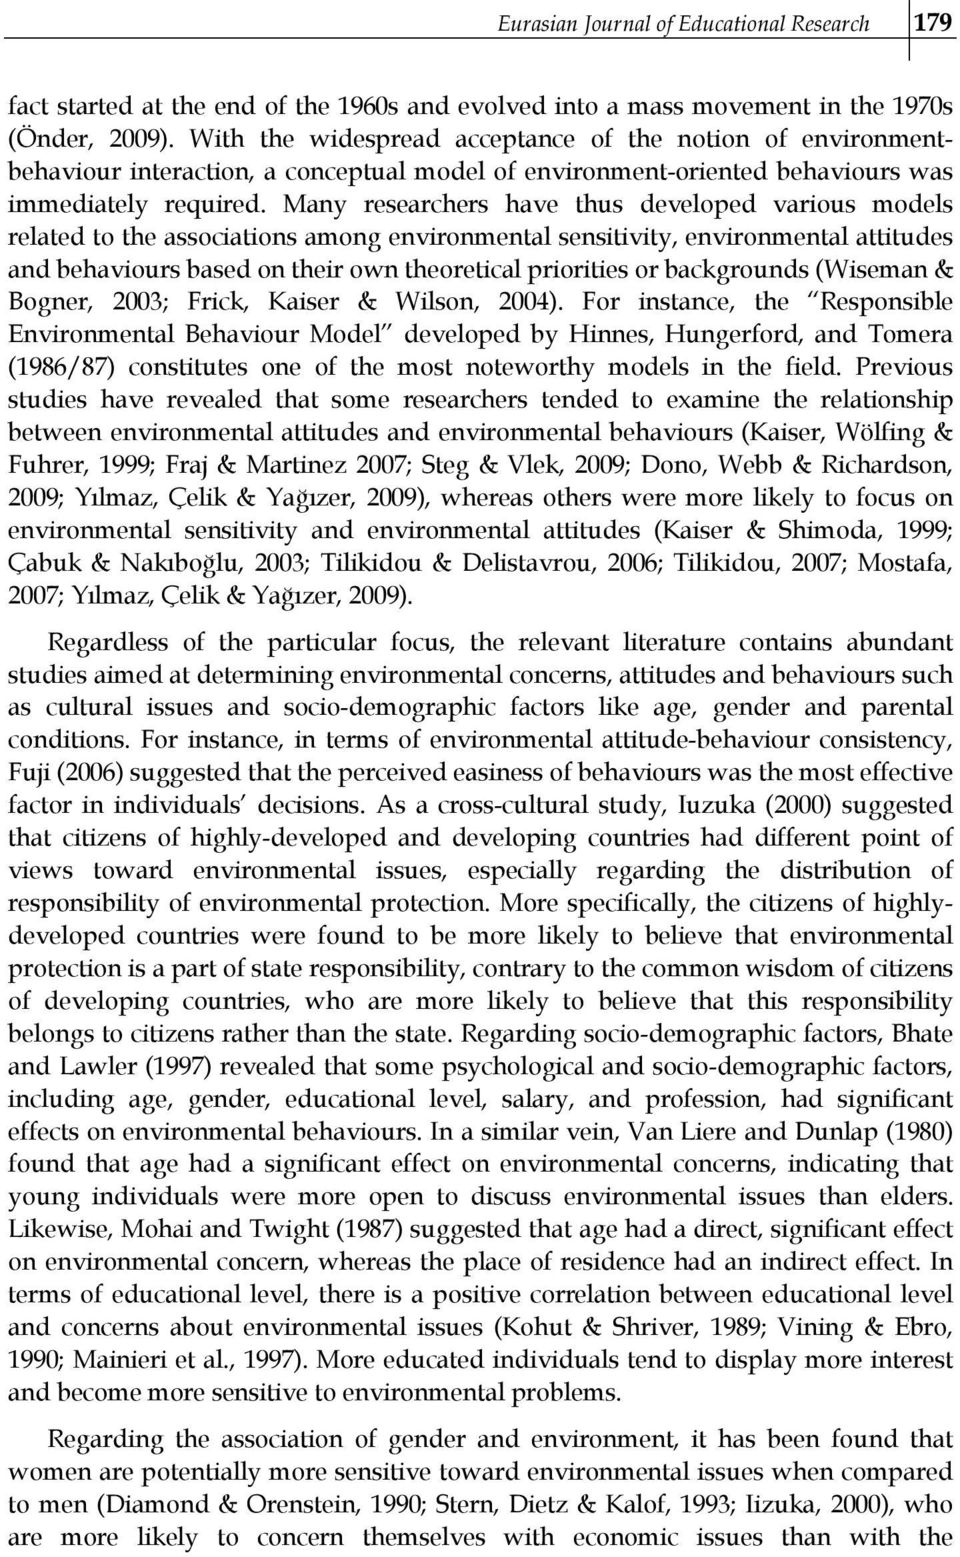 Many researchers have thus developed various models related to the associations among environmental sensitivity, environmental attitudes and behaviours based on their own theoretical priorities or